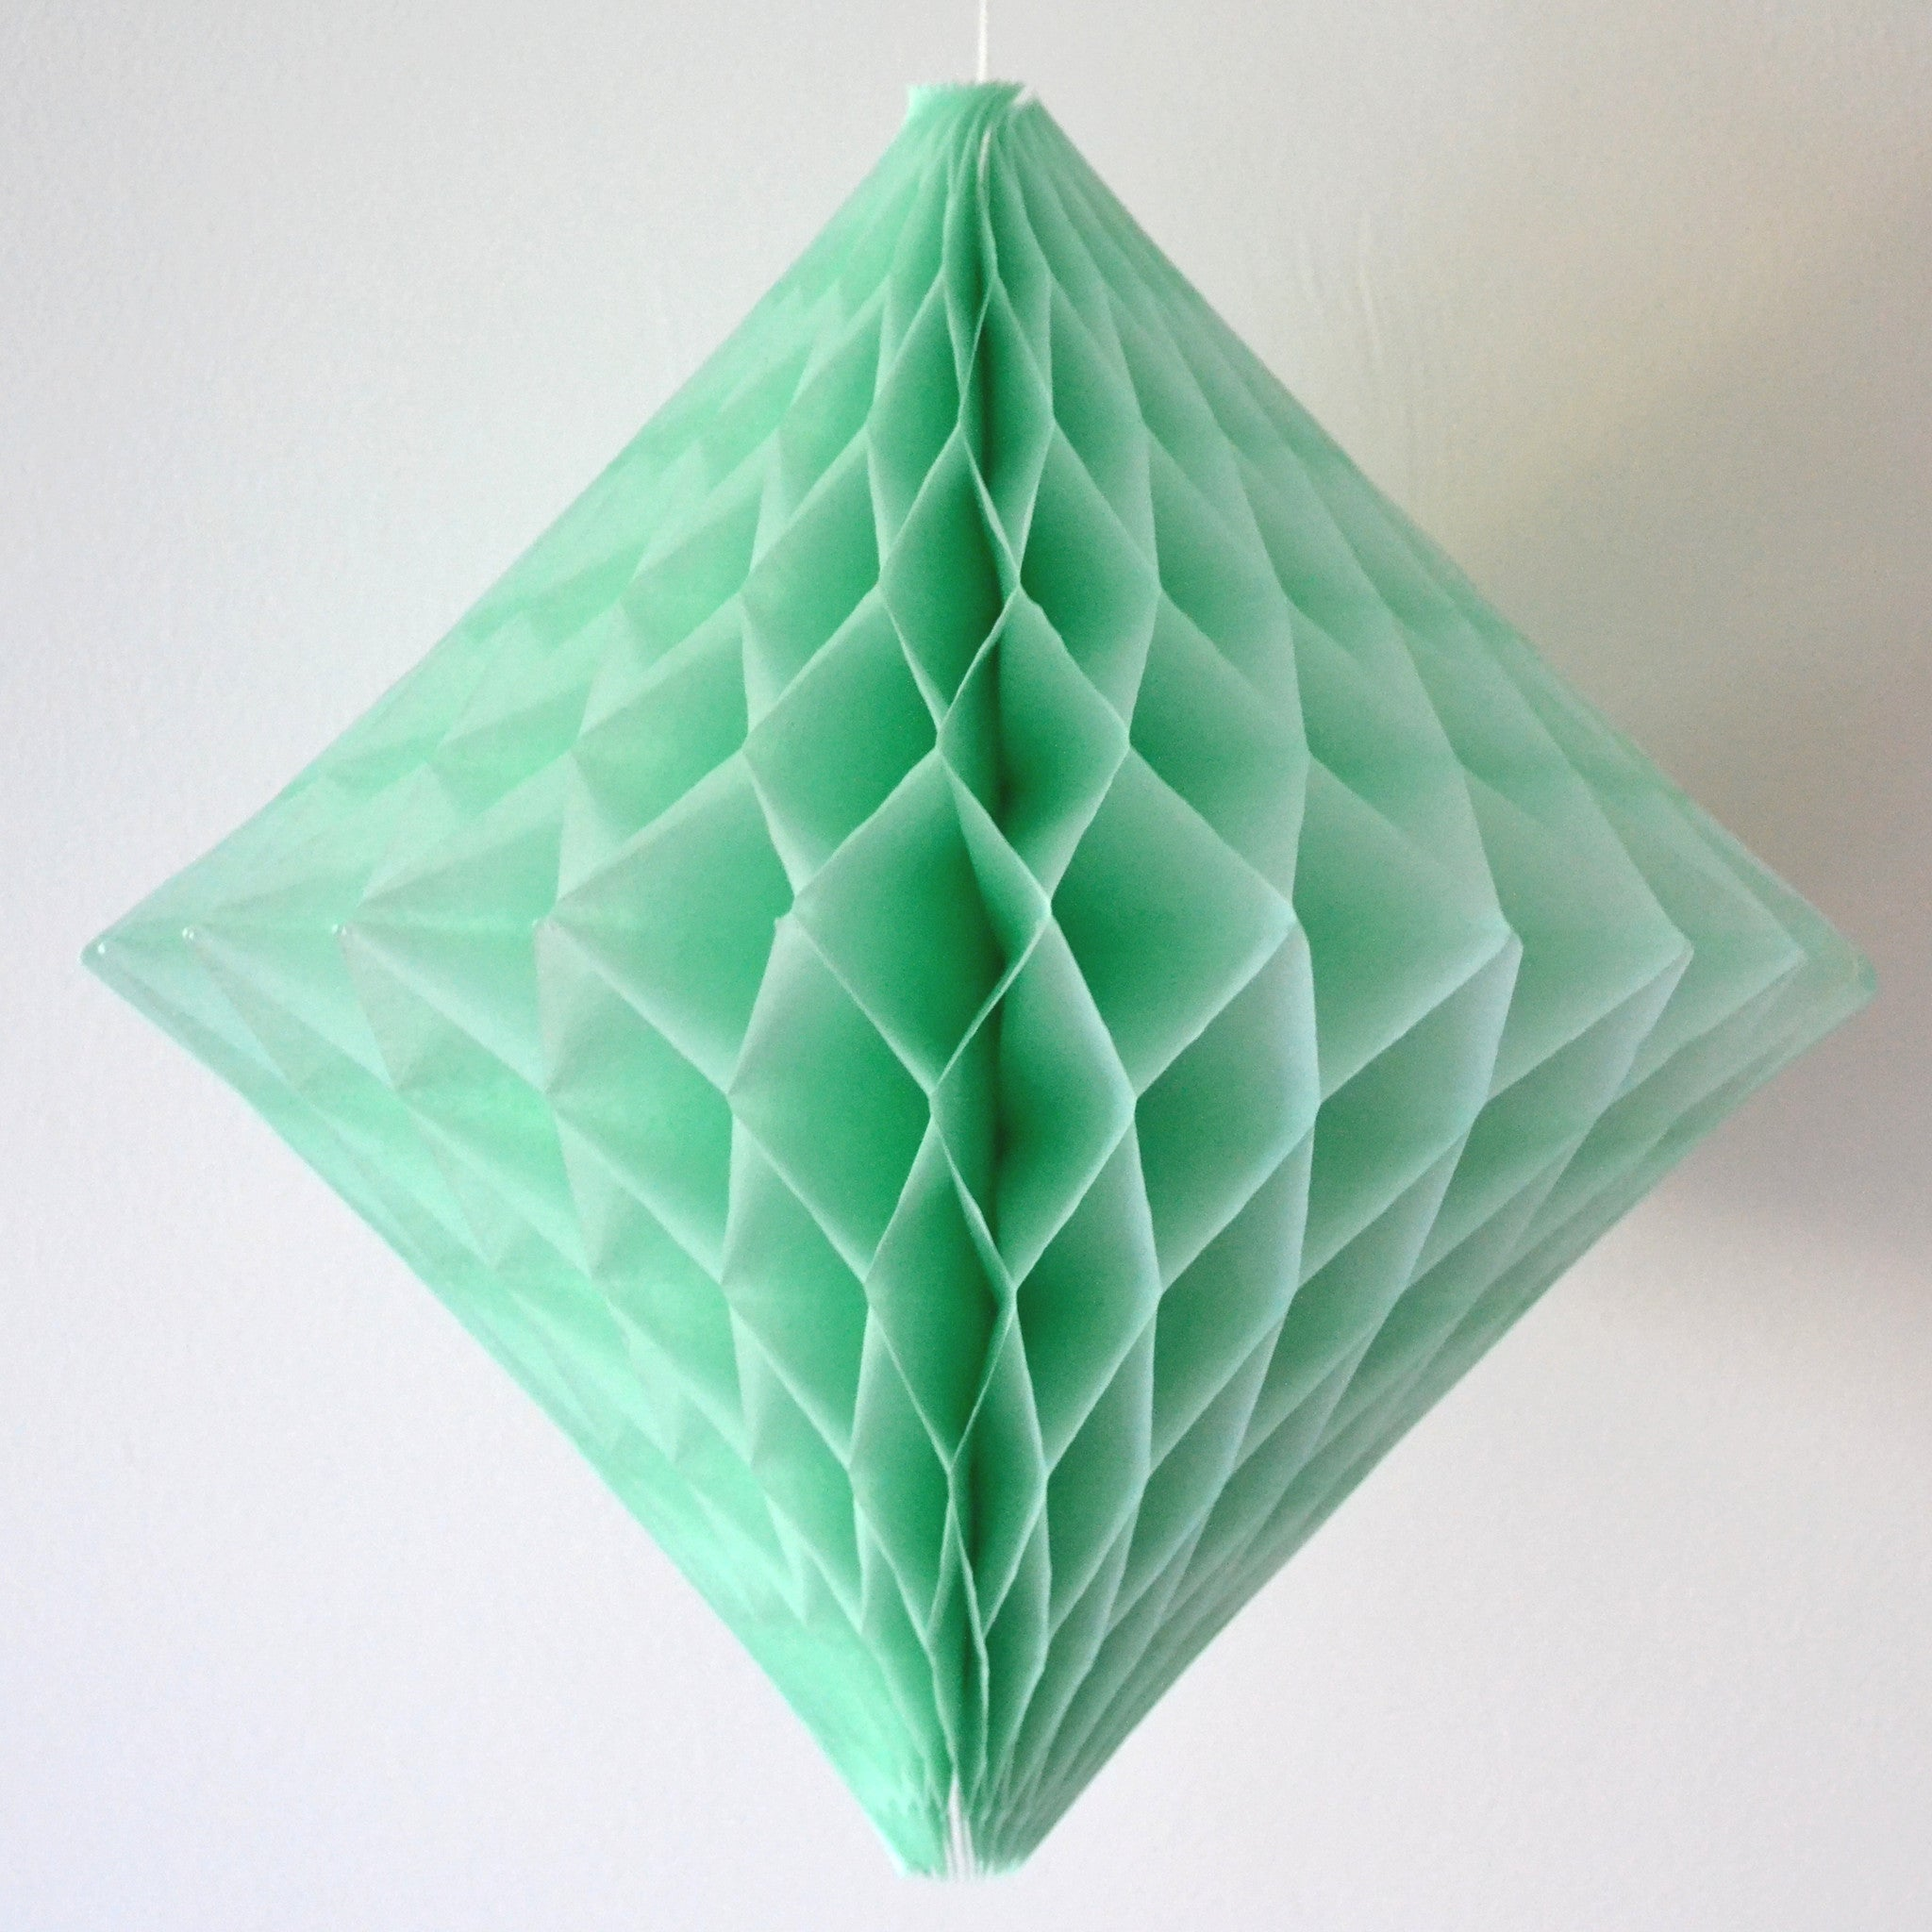 Mint Diamond Honeycomb Decoration - The Sweet Hostess